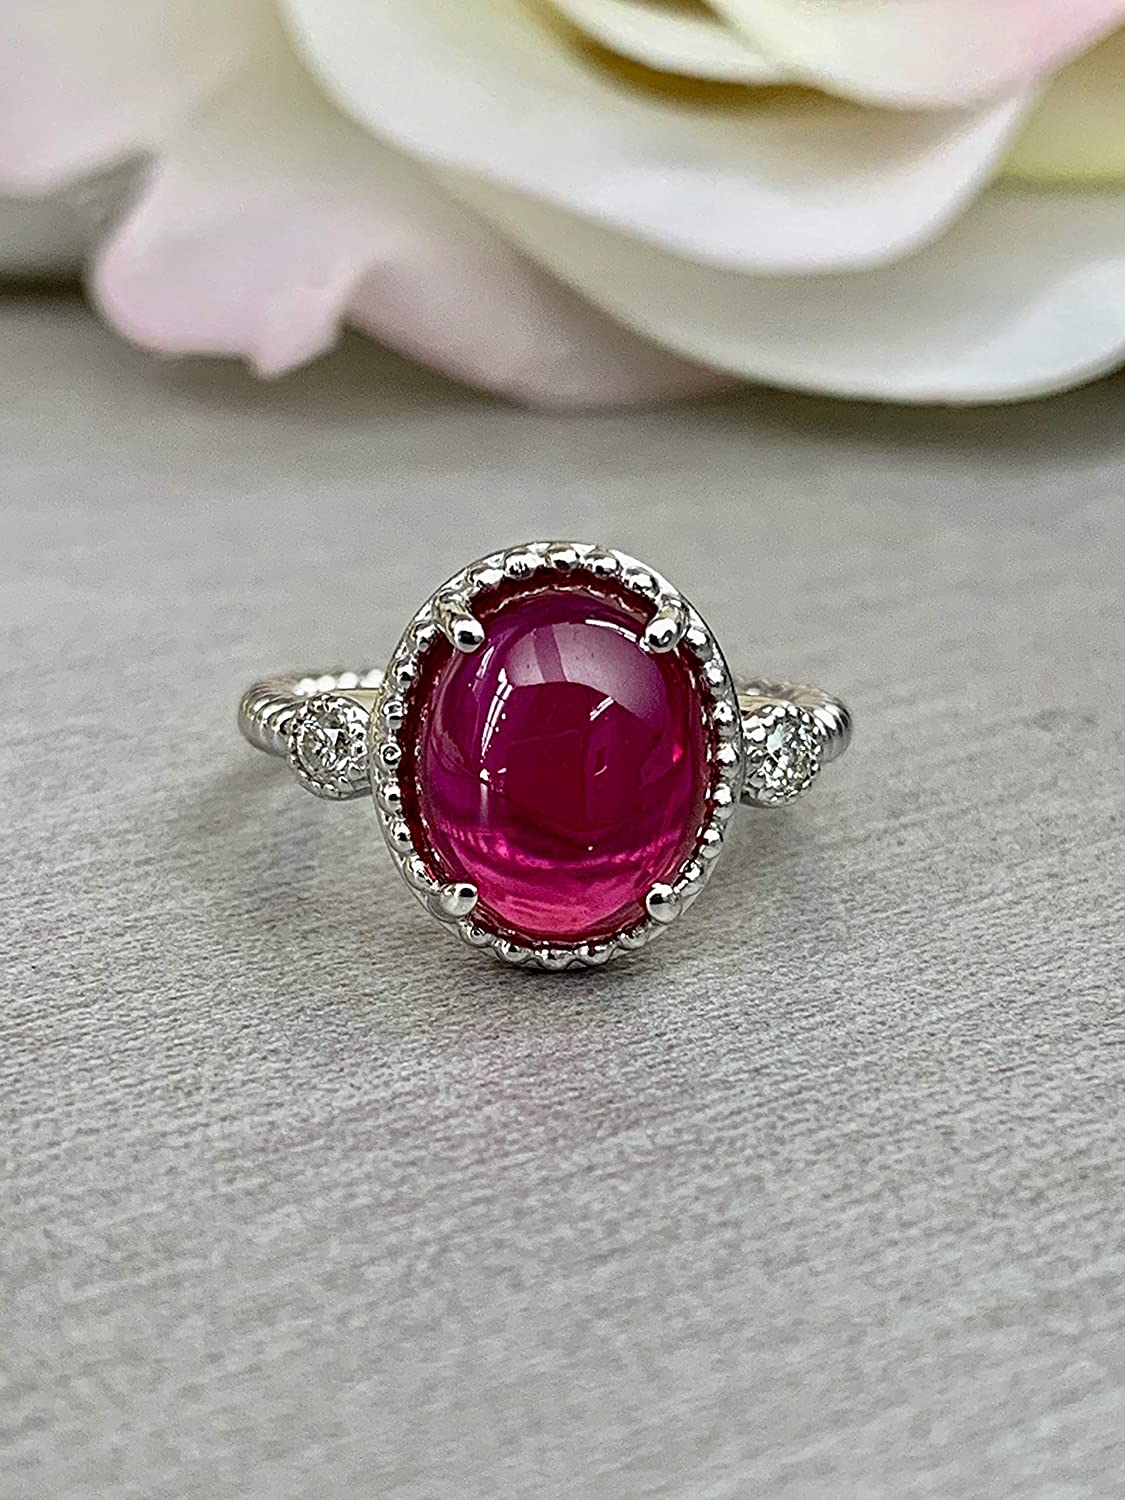 Attractive Fine Quality Ruby Necklace Size 10X8 mm Ruby Loose Gemstone For Ruby Ring 4.56 Ct RUBY Oval Shape Cabochon Ruby Pendant